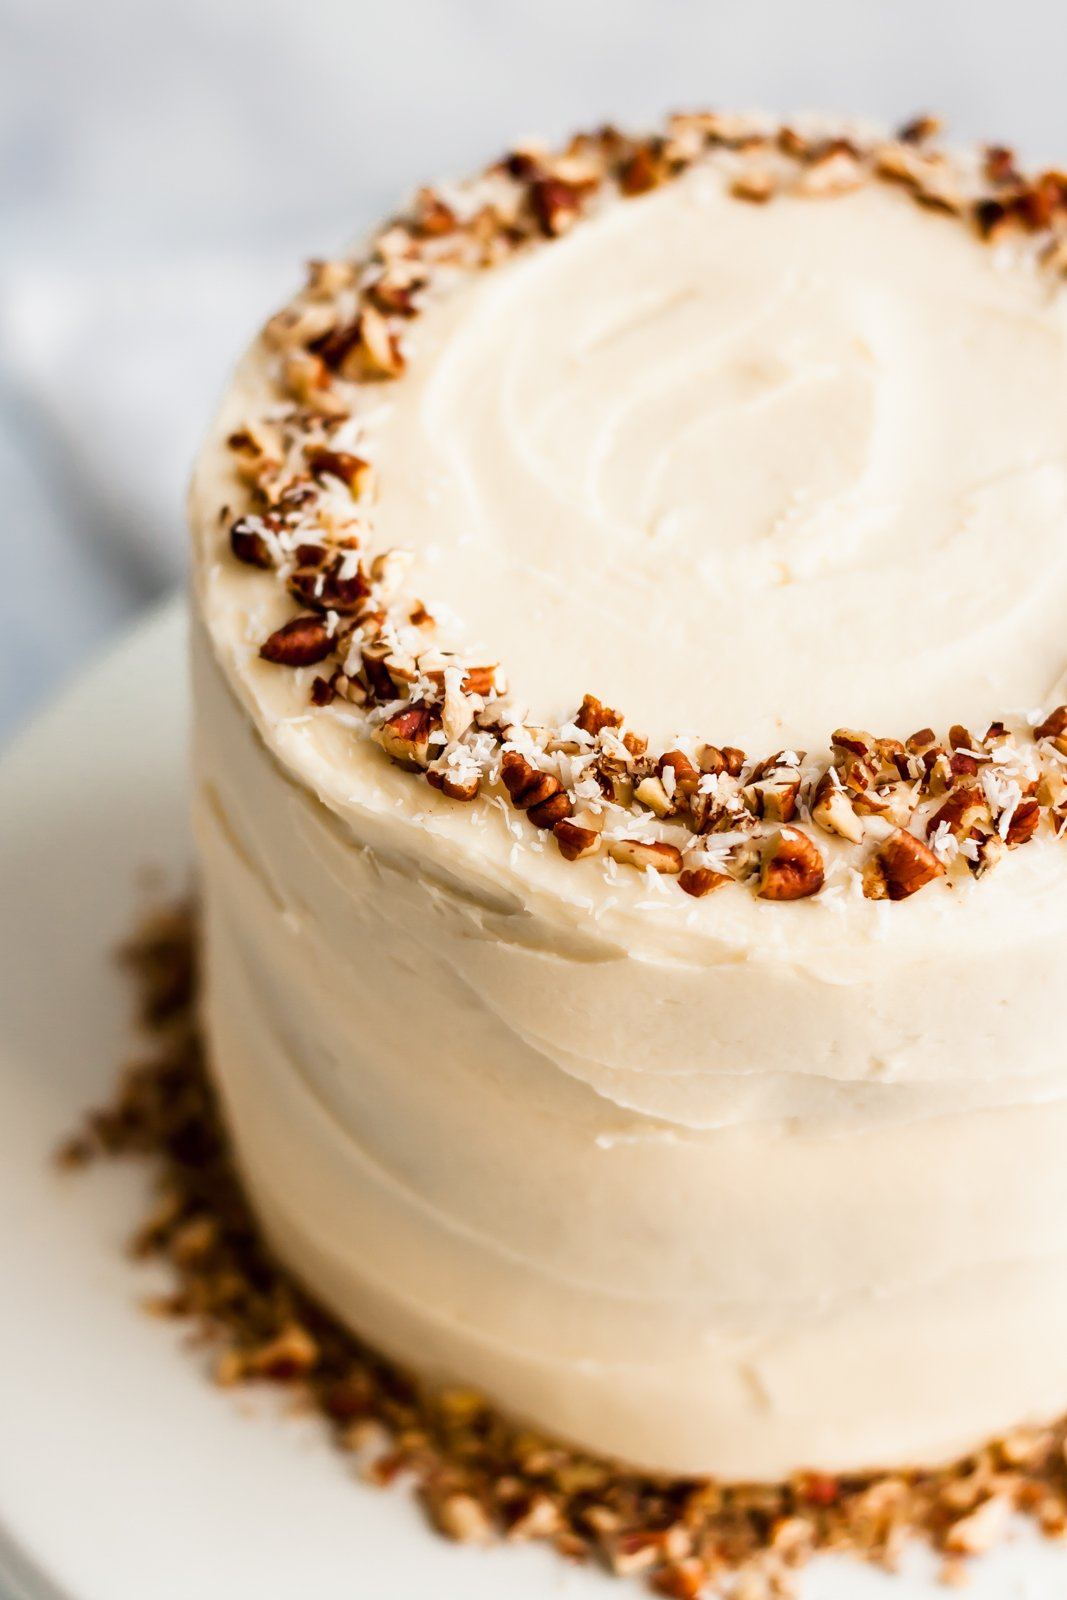 healthy gluten free carrot cake topped with pecans